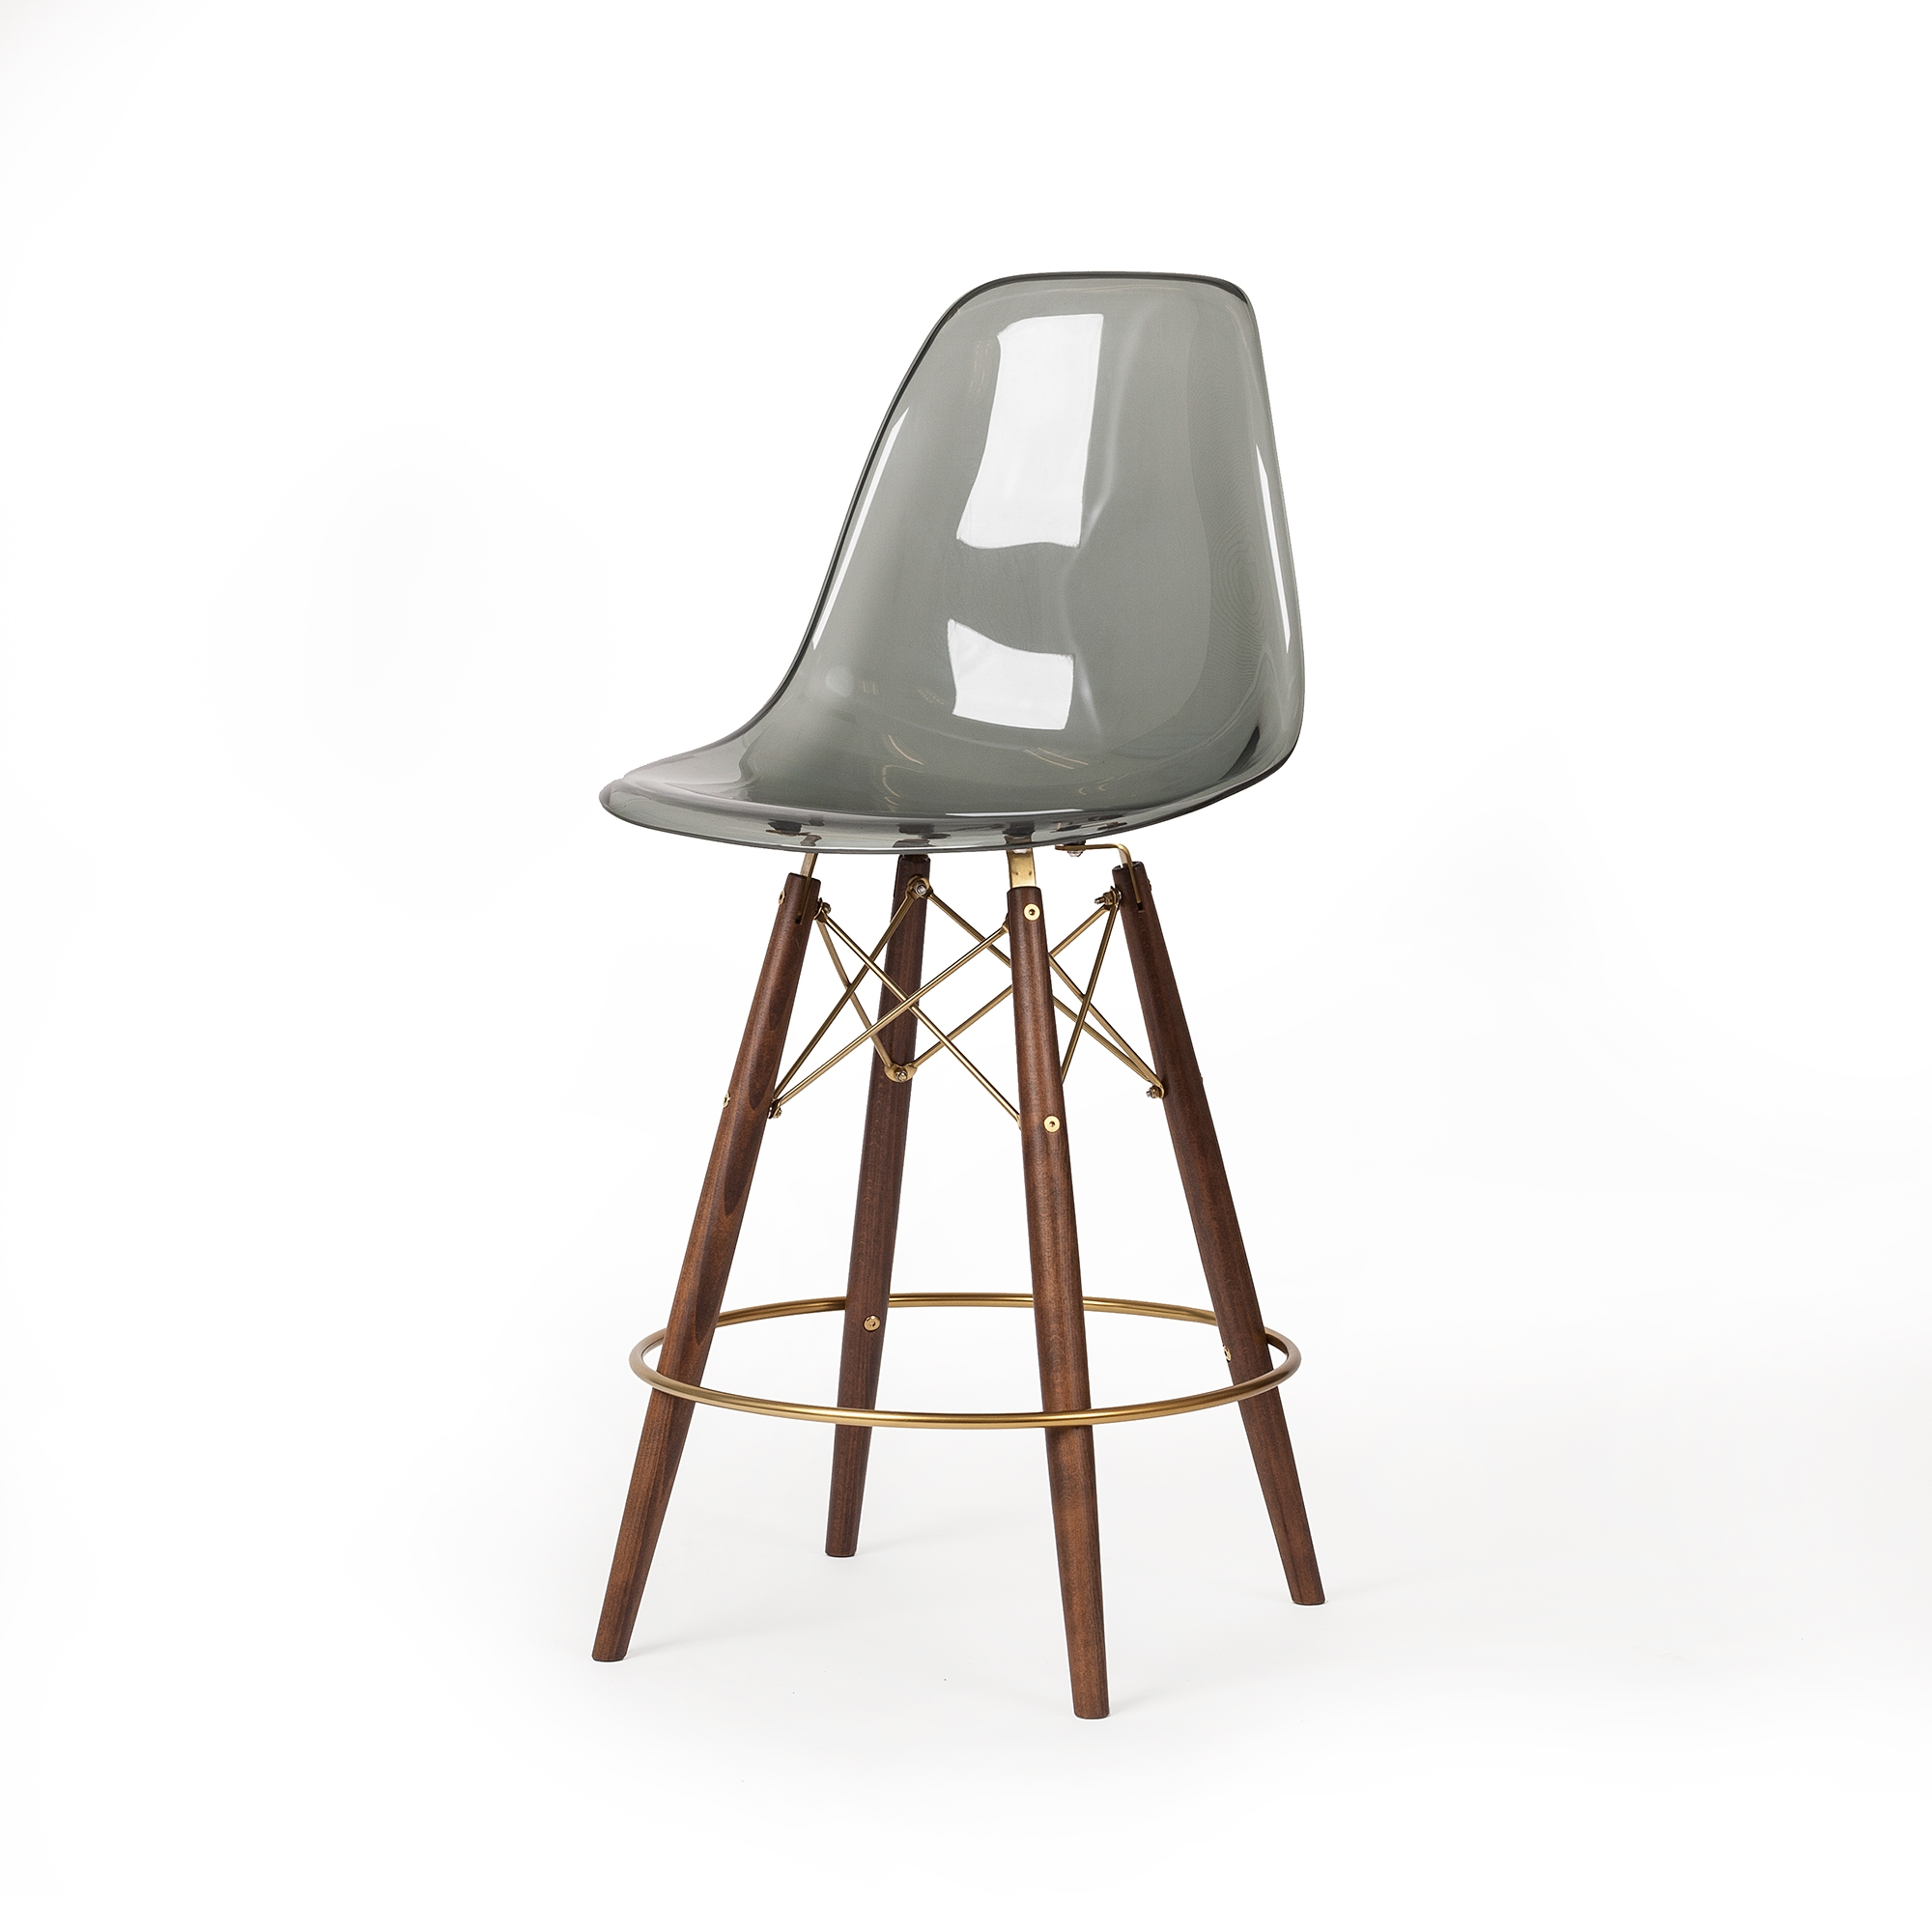 Groovy Molded Smoke Translucent Acrylic Midcentury Modern Counter Stool Champagne Gold Detail Squirreltailoven Fun Painted Chair Ideas Images Squirreltailovenorg